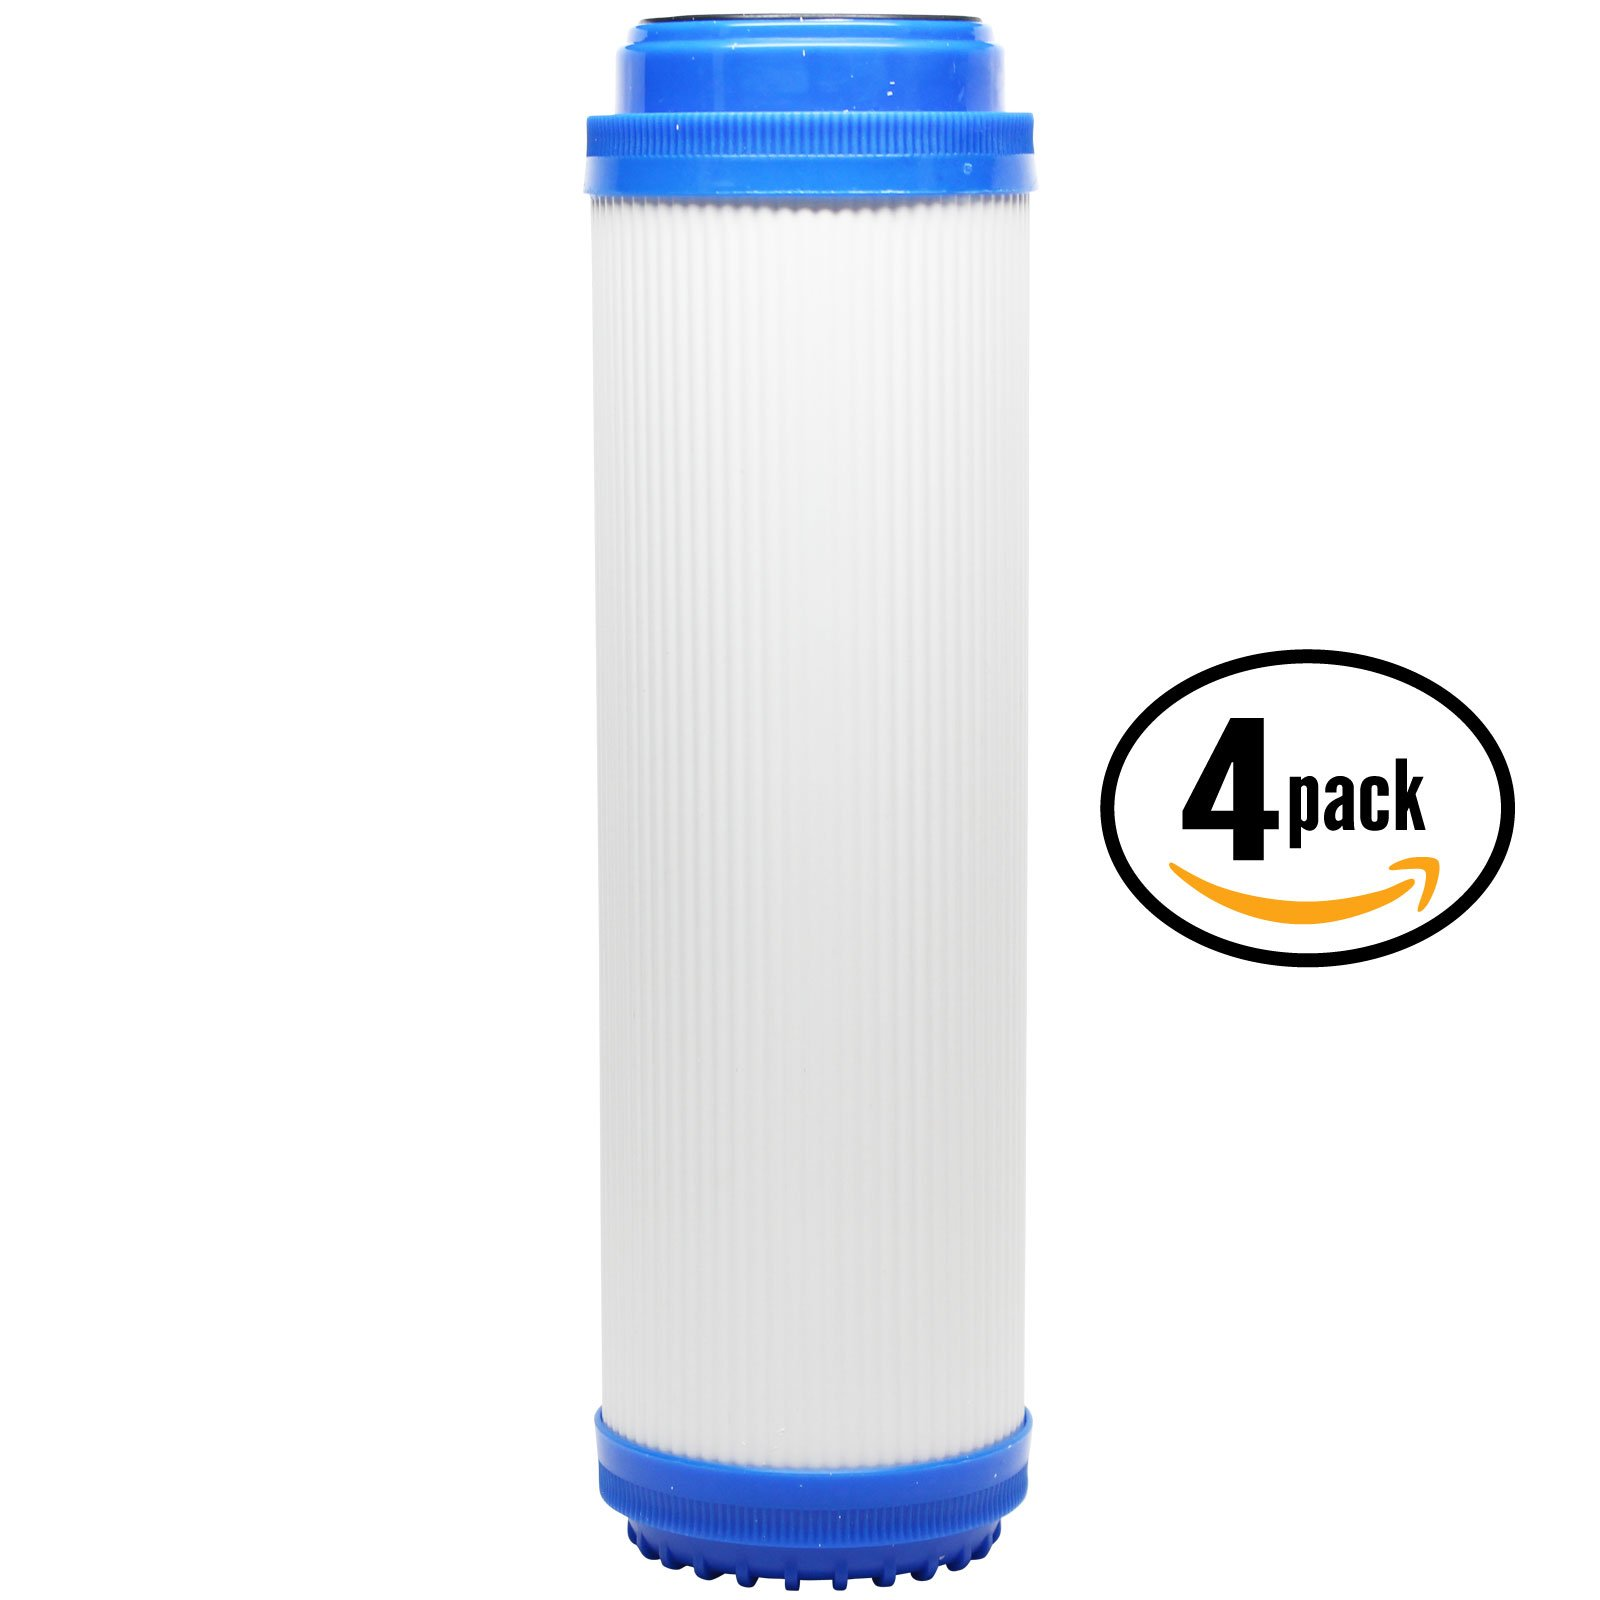 4-Pack Replacement 3M Aqua-Pure SS8 EPE-316L Granular Activated Carbon Filter - Universal 10-inch Cartridge for 3M Aqua-Pure Whole House Stainless Steel Filter Housing - Denali Pure Brand